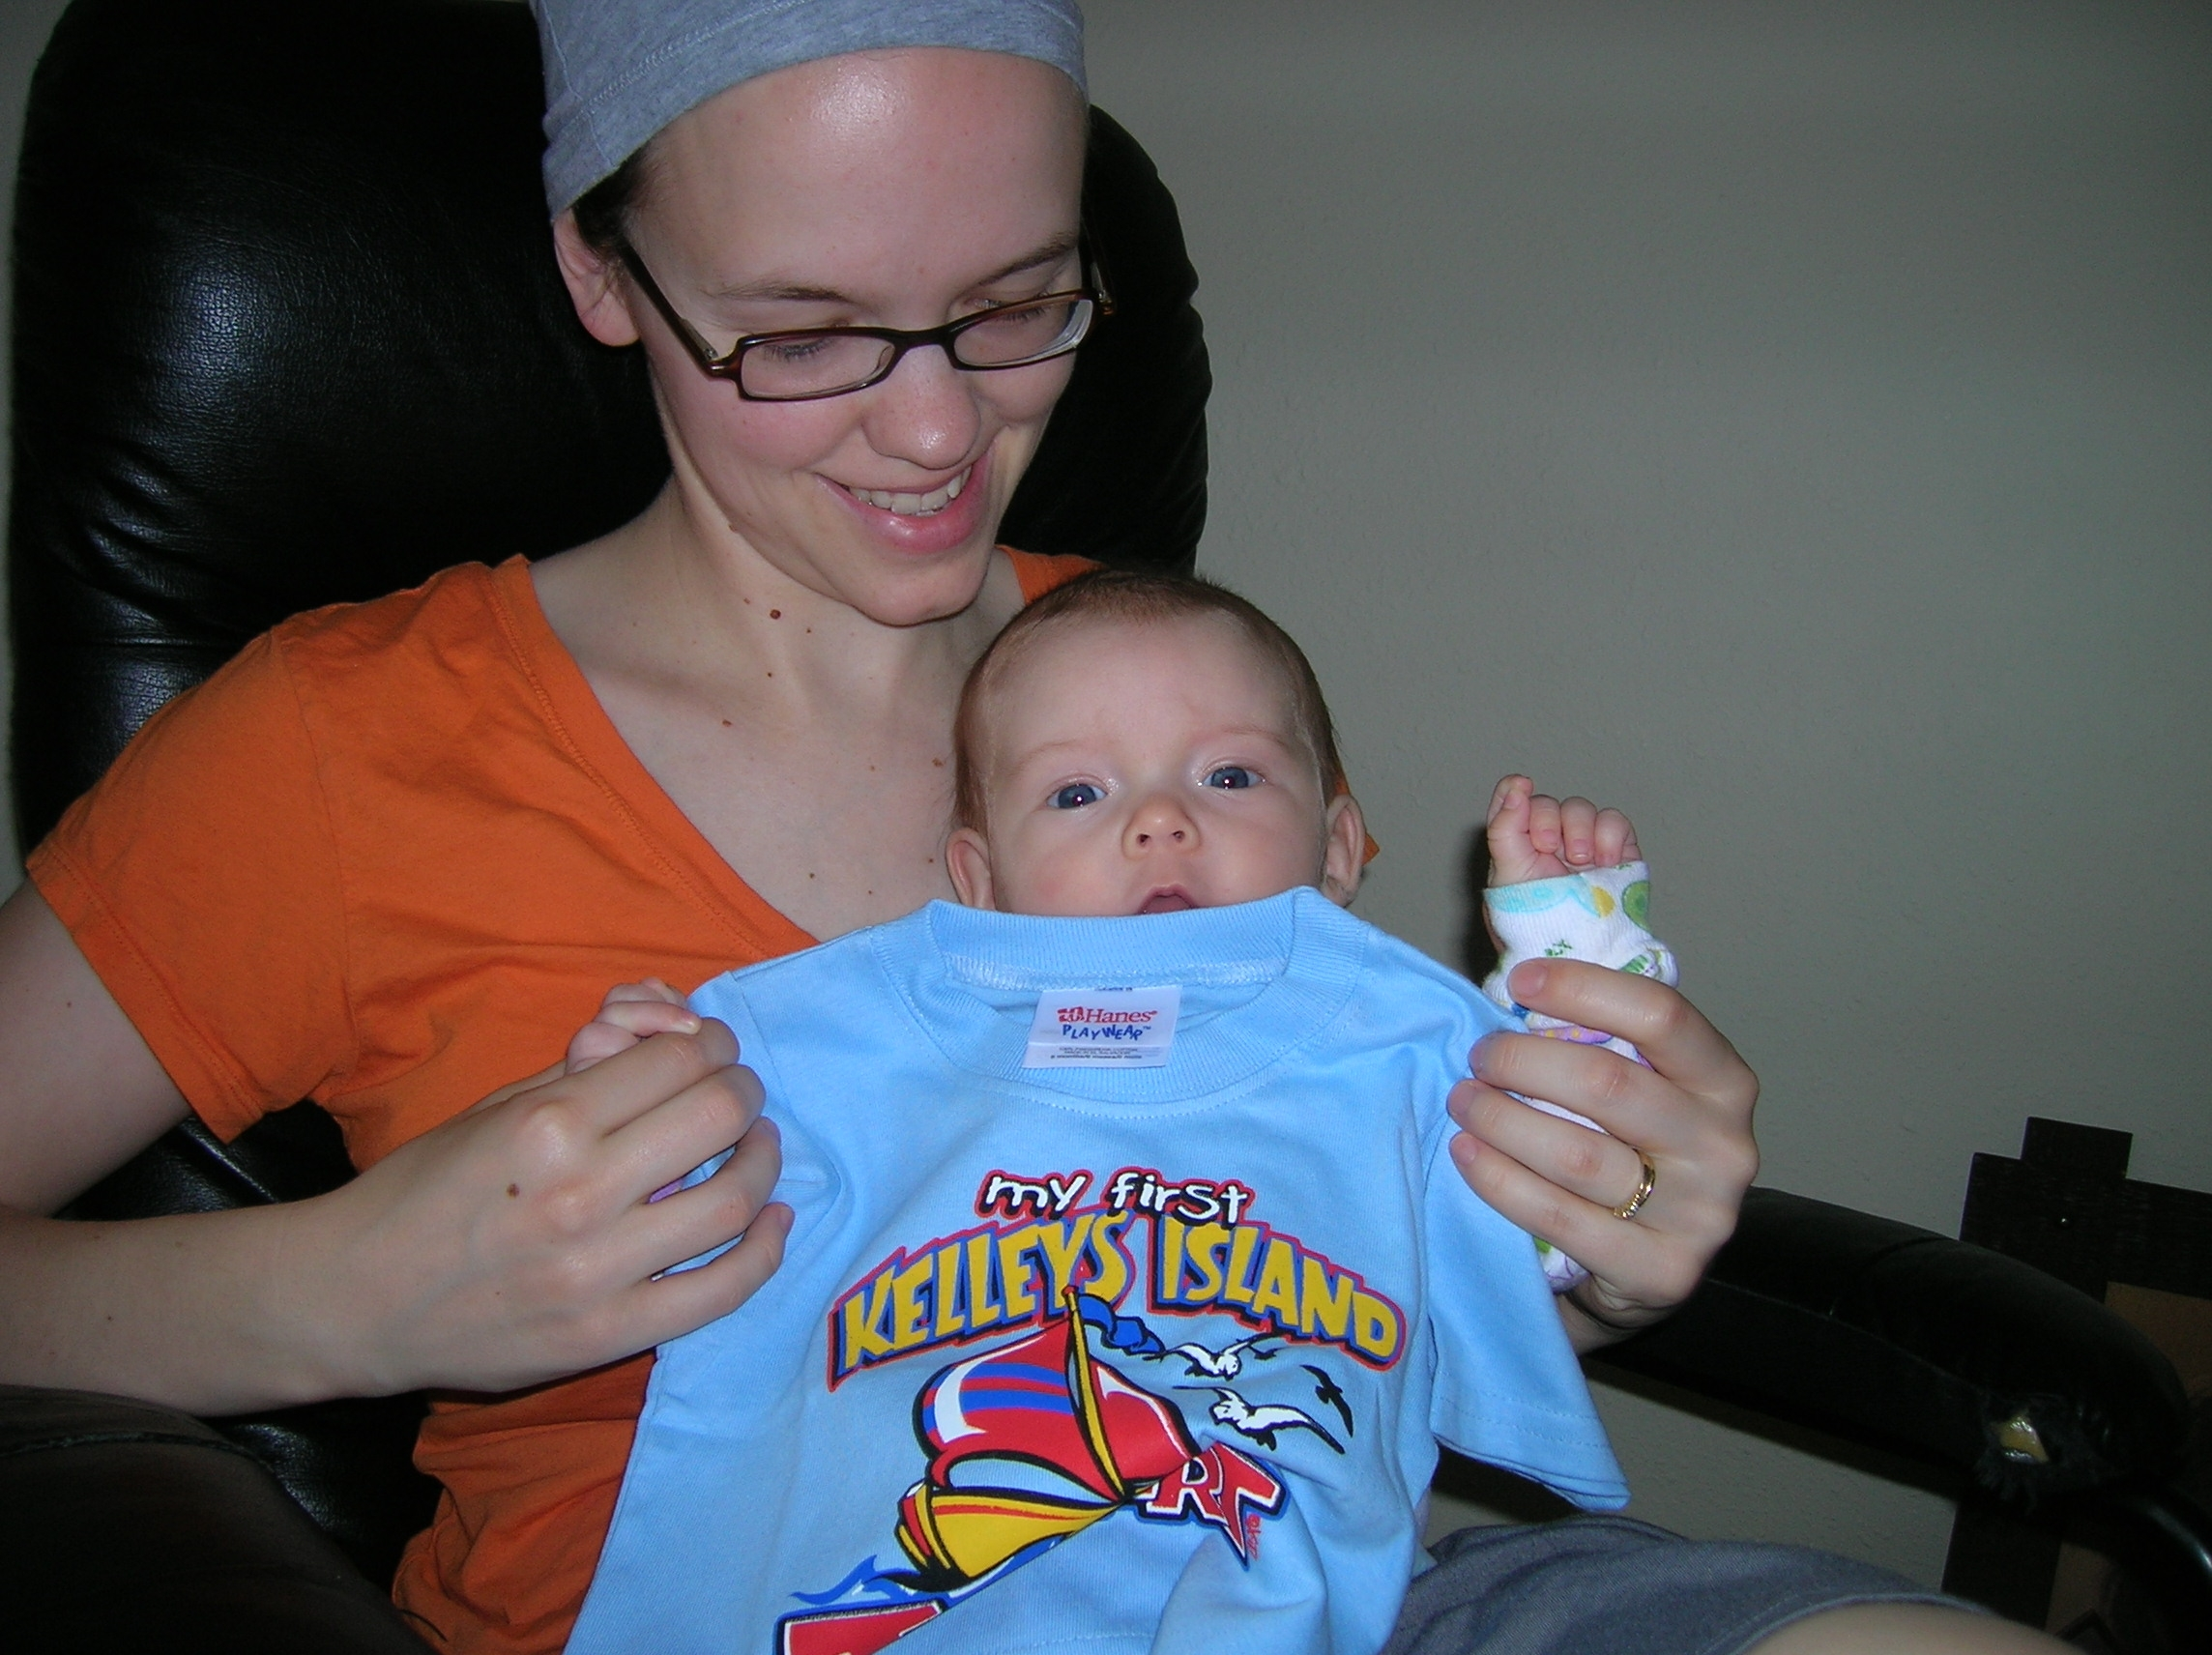 Ava's First Kelley's Island T